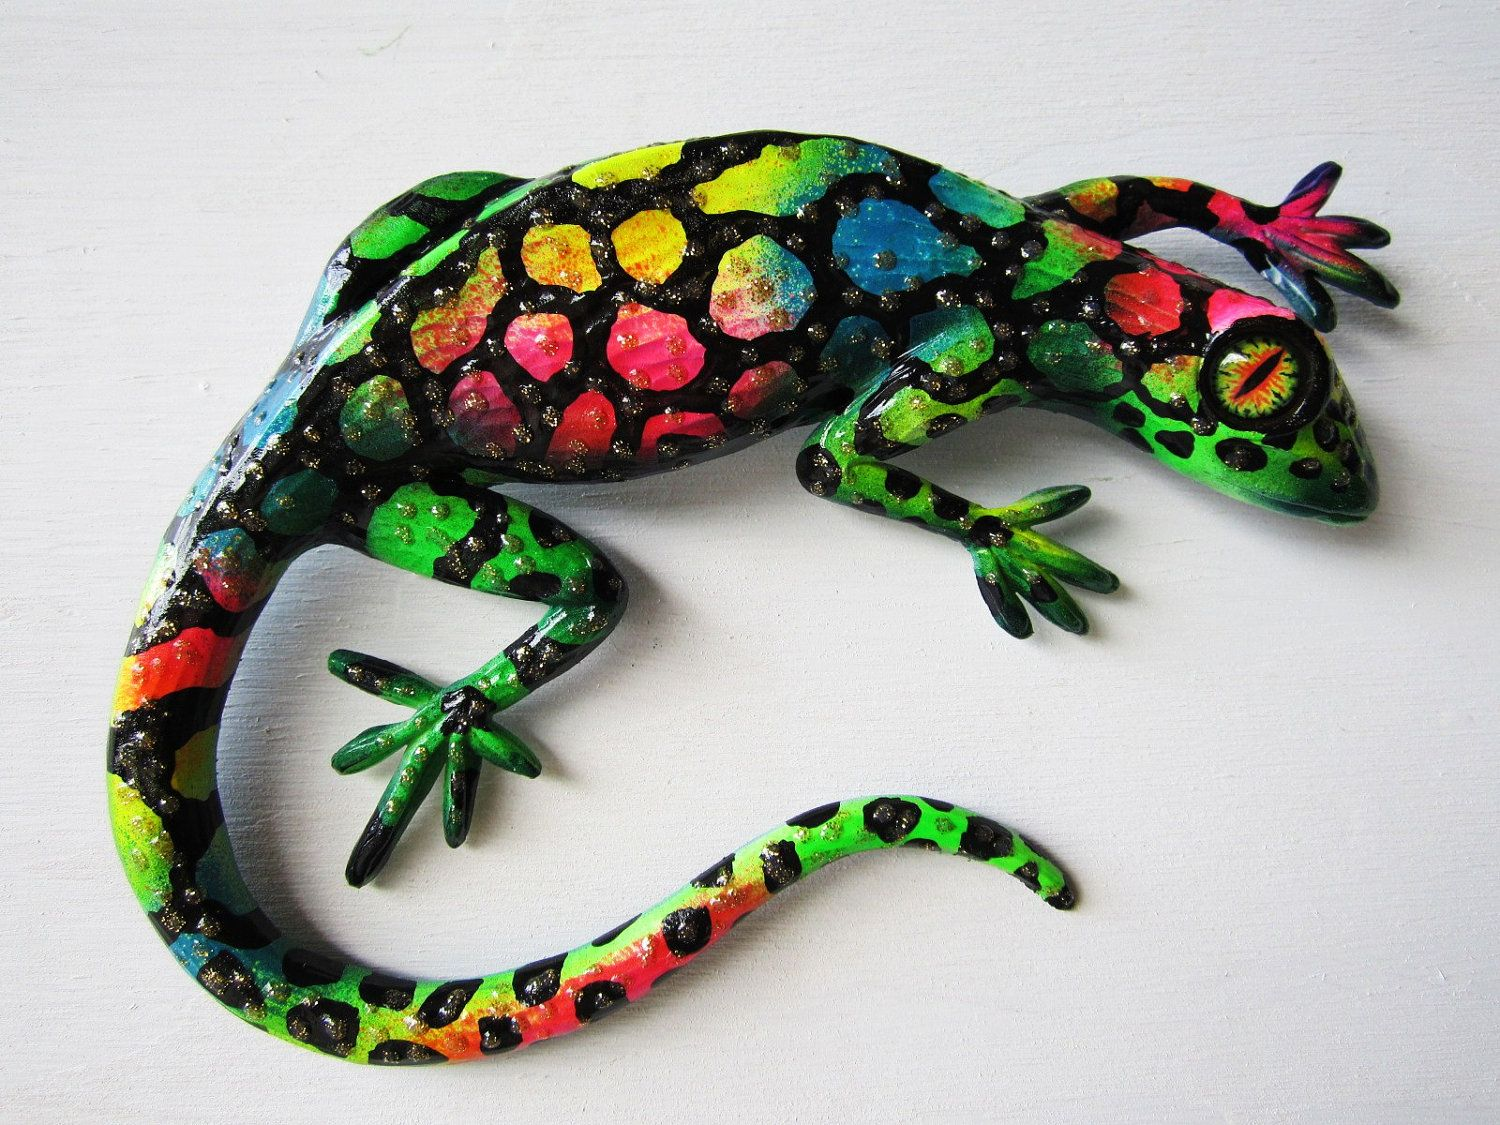 Reptile Art Wall Decor Whimsical Lizard Sculpture 20 00 Via Etsy Lizard Wall Art Decor Art Wall